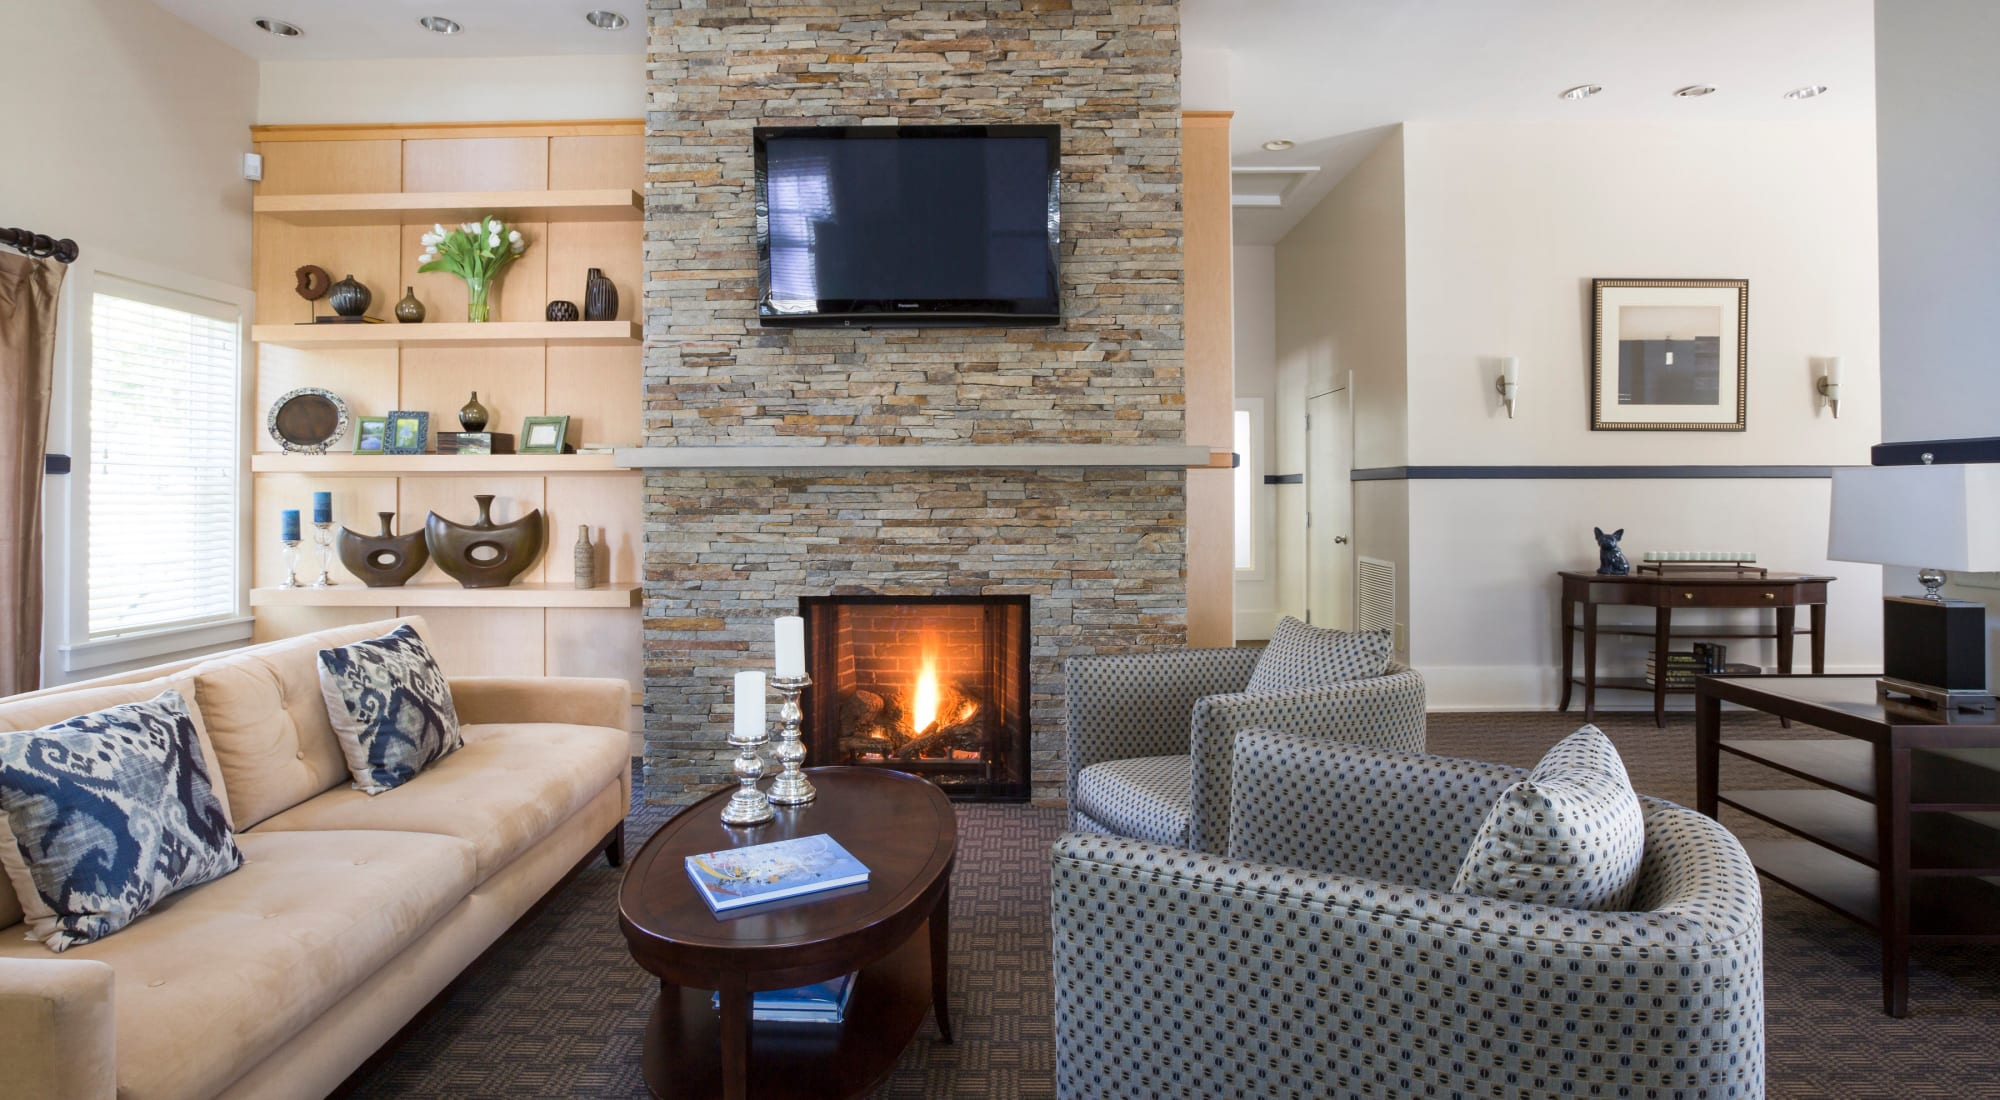 Amenities at Regency Place in Wilmington, Massachusetts